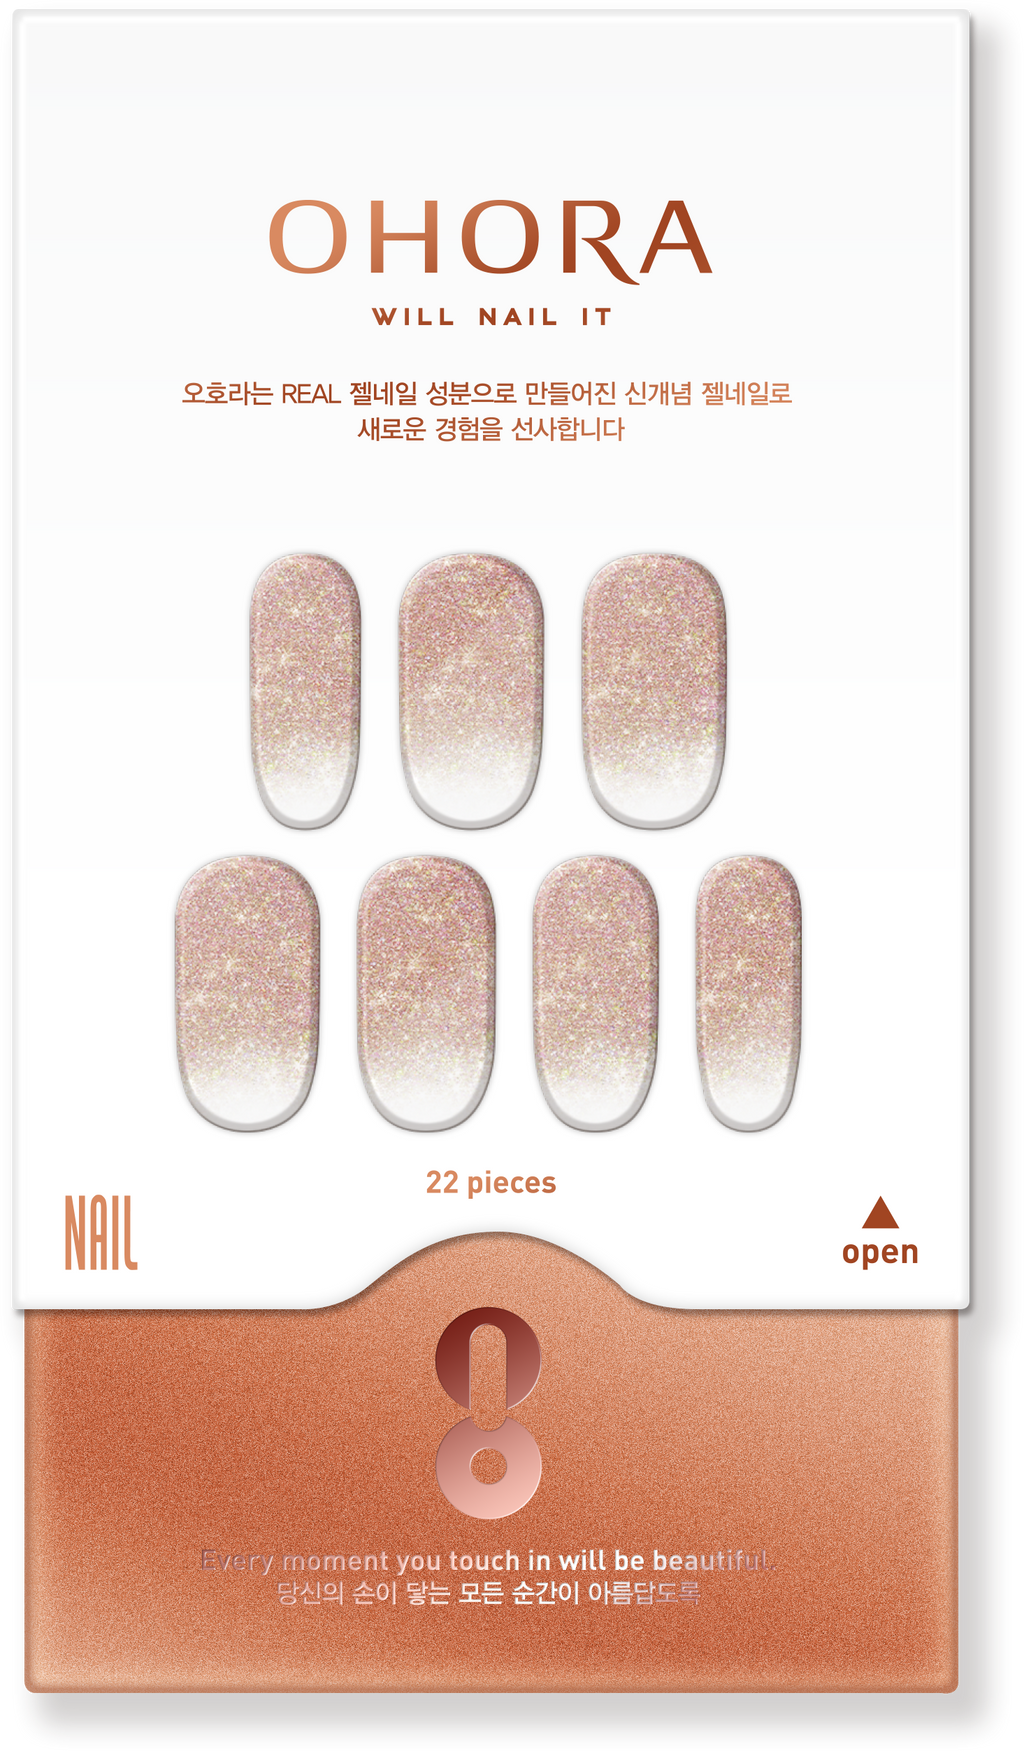 Cosmetique Coreen Ohora Stickers Ongles